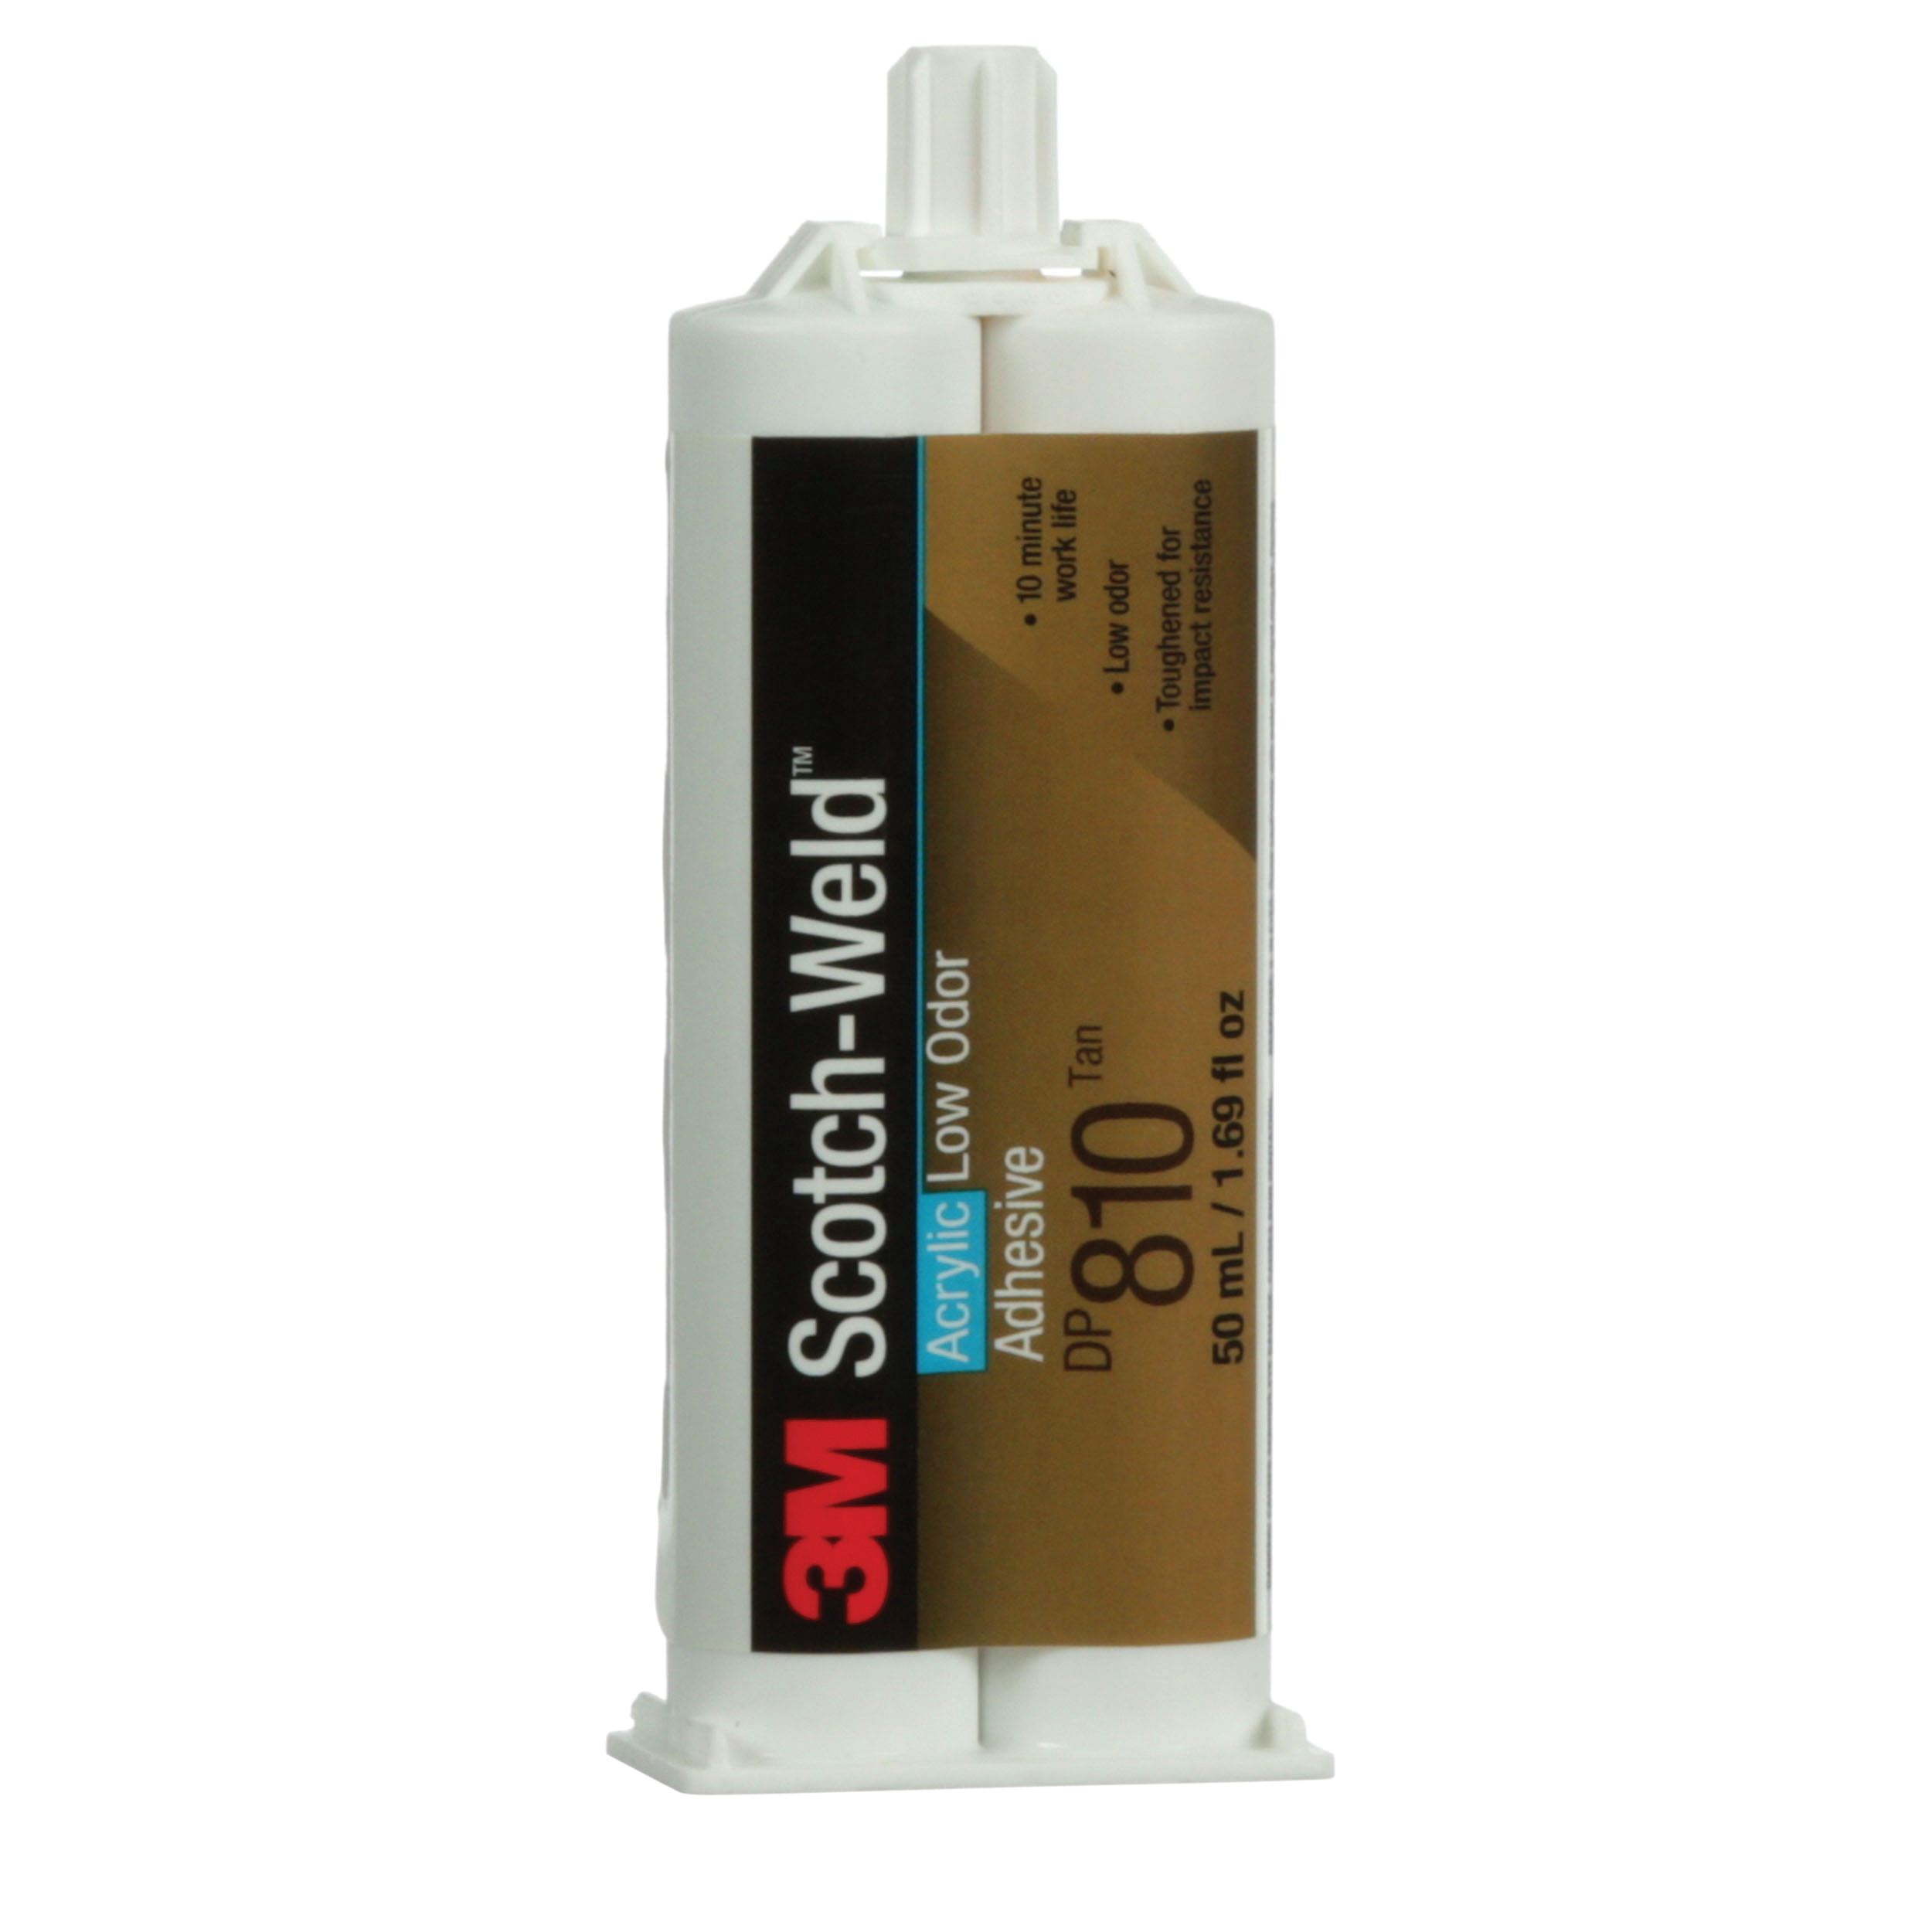 3M™ Scotch-Weld™ 021200-31310 2-Part Low Odor Adhesive, 50 mL Dual-Cartridge, Part A: Green/Part B: White, 8 to 24 hr Curing